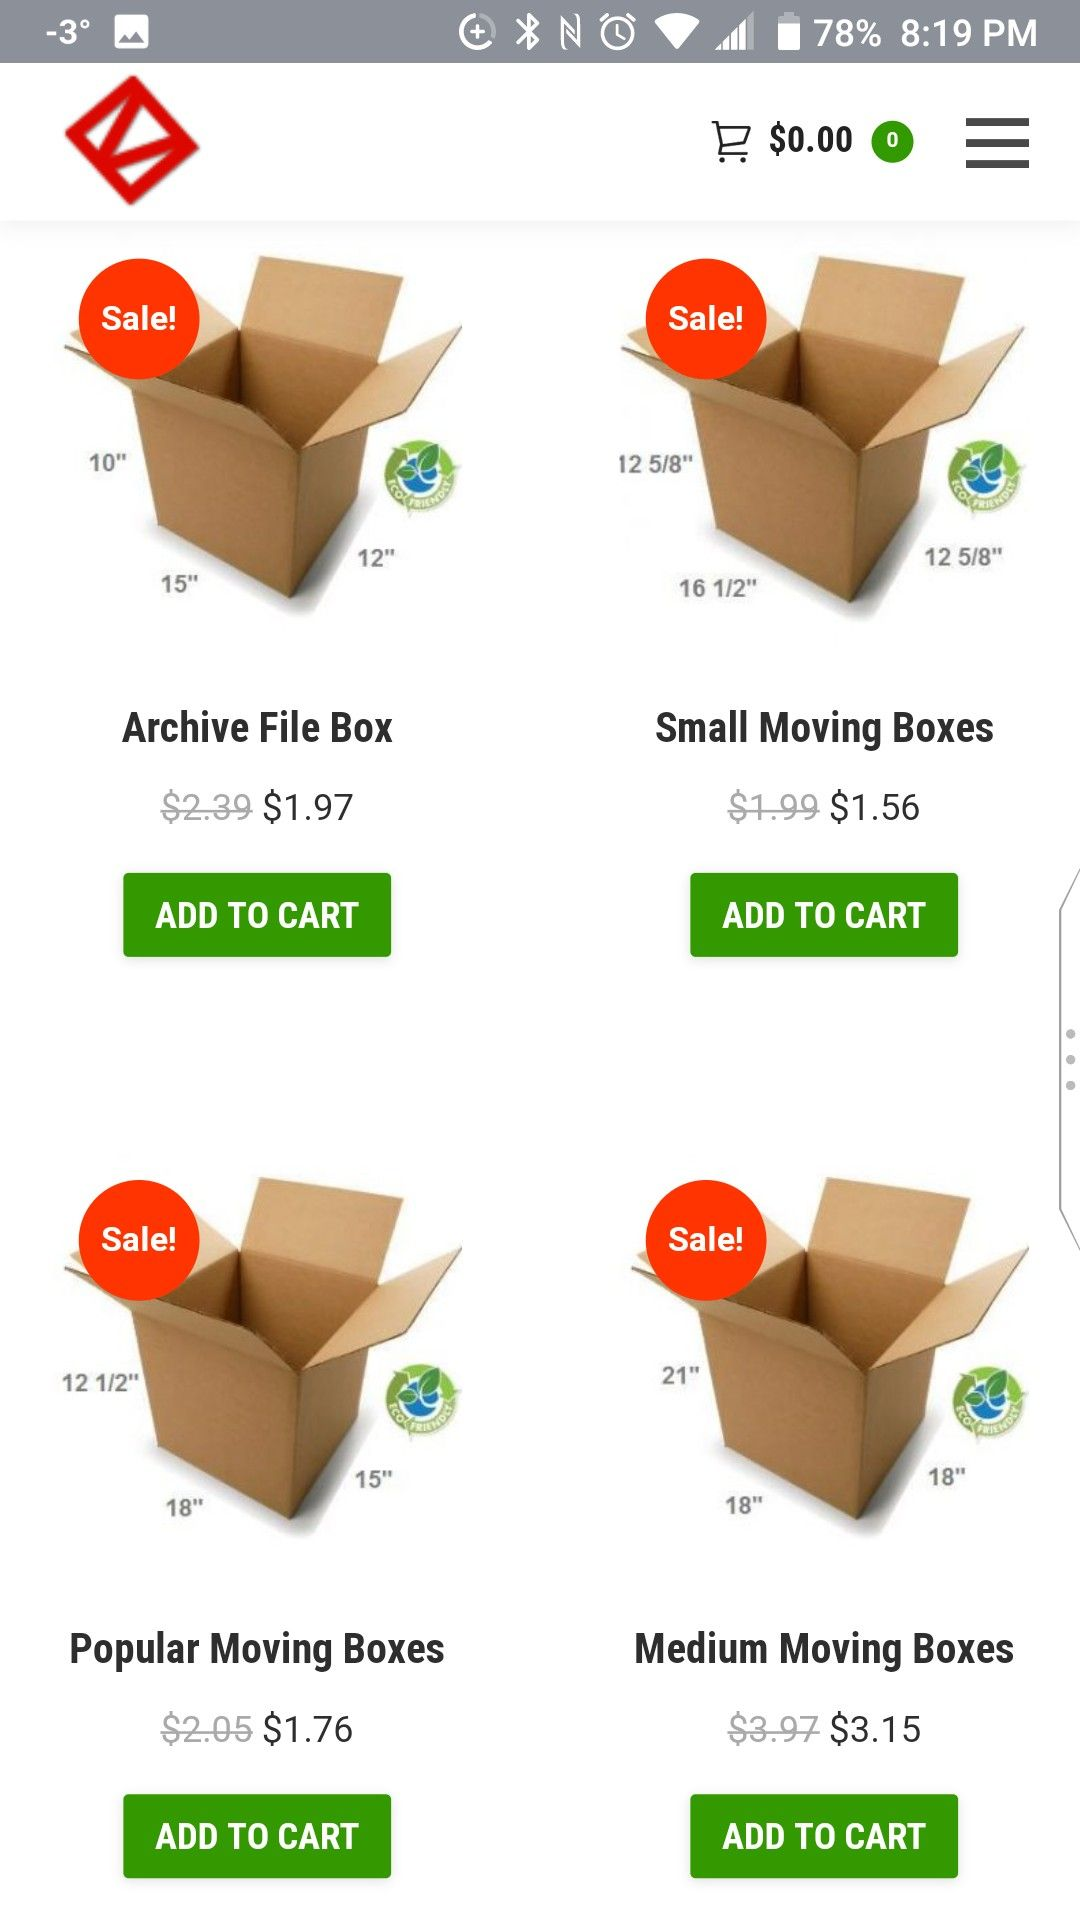 Shop Anywhere Anytime Securely On Any Device Free Delivery Packing And Moving Made Easy Www Movingboxes Ca 613 82 Moving Supplies Moving Boxes File Box